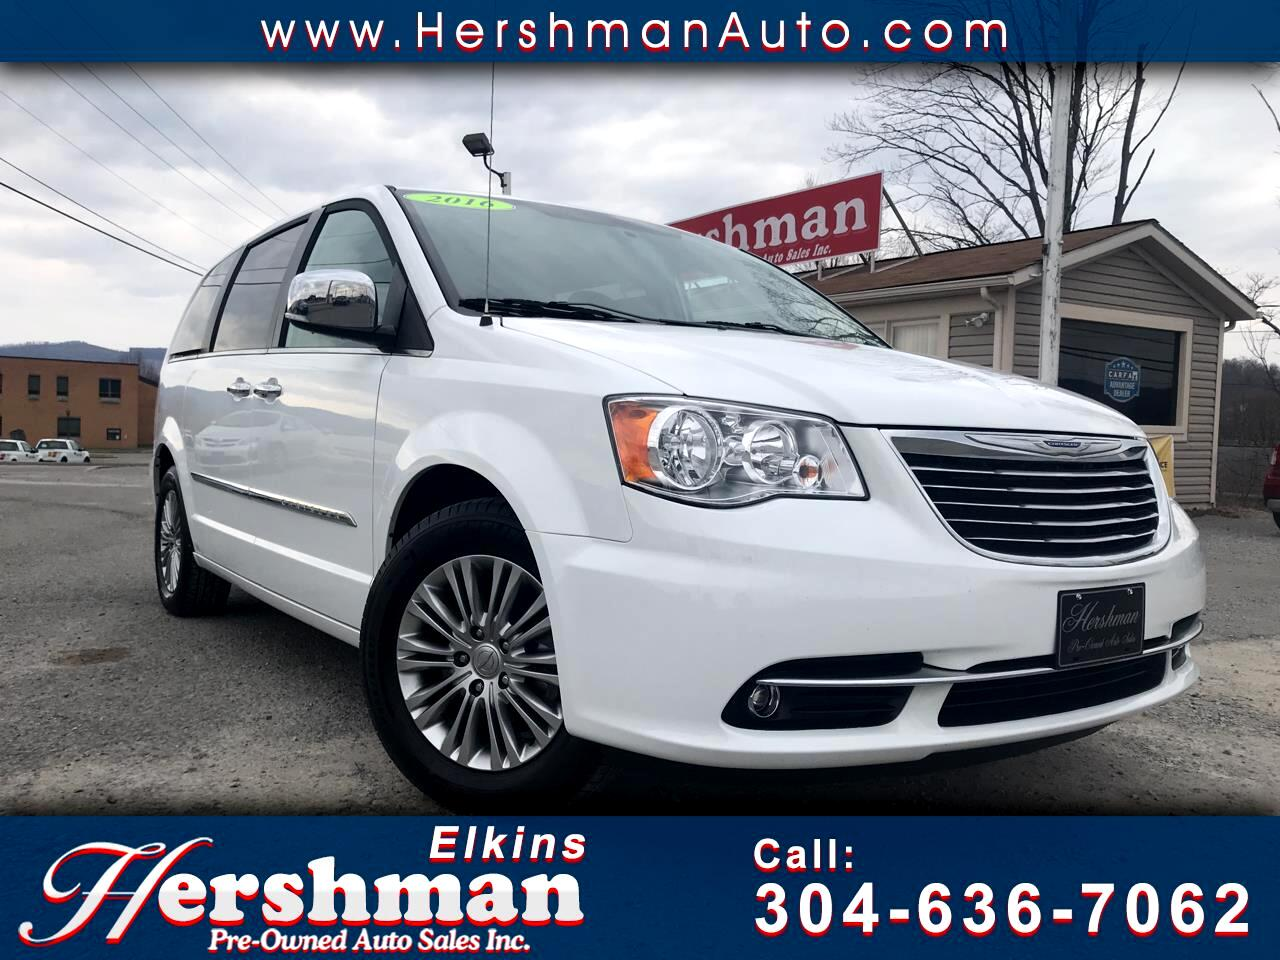 2016 Chrysler Town & Country 4dr Wgn Touring w/Leather 30th Anniversary